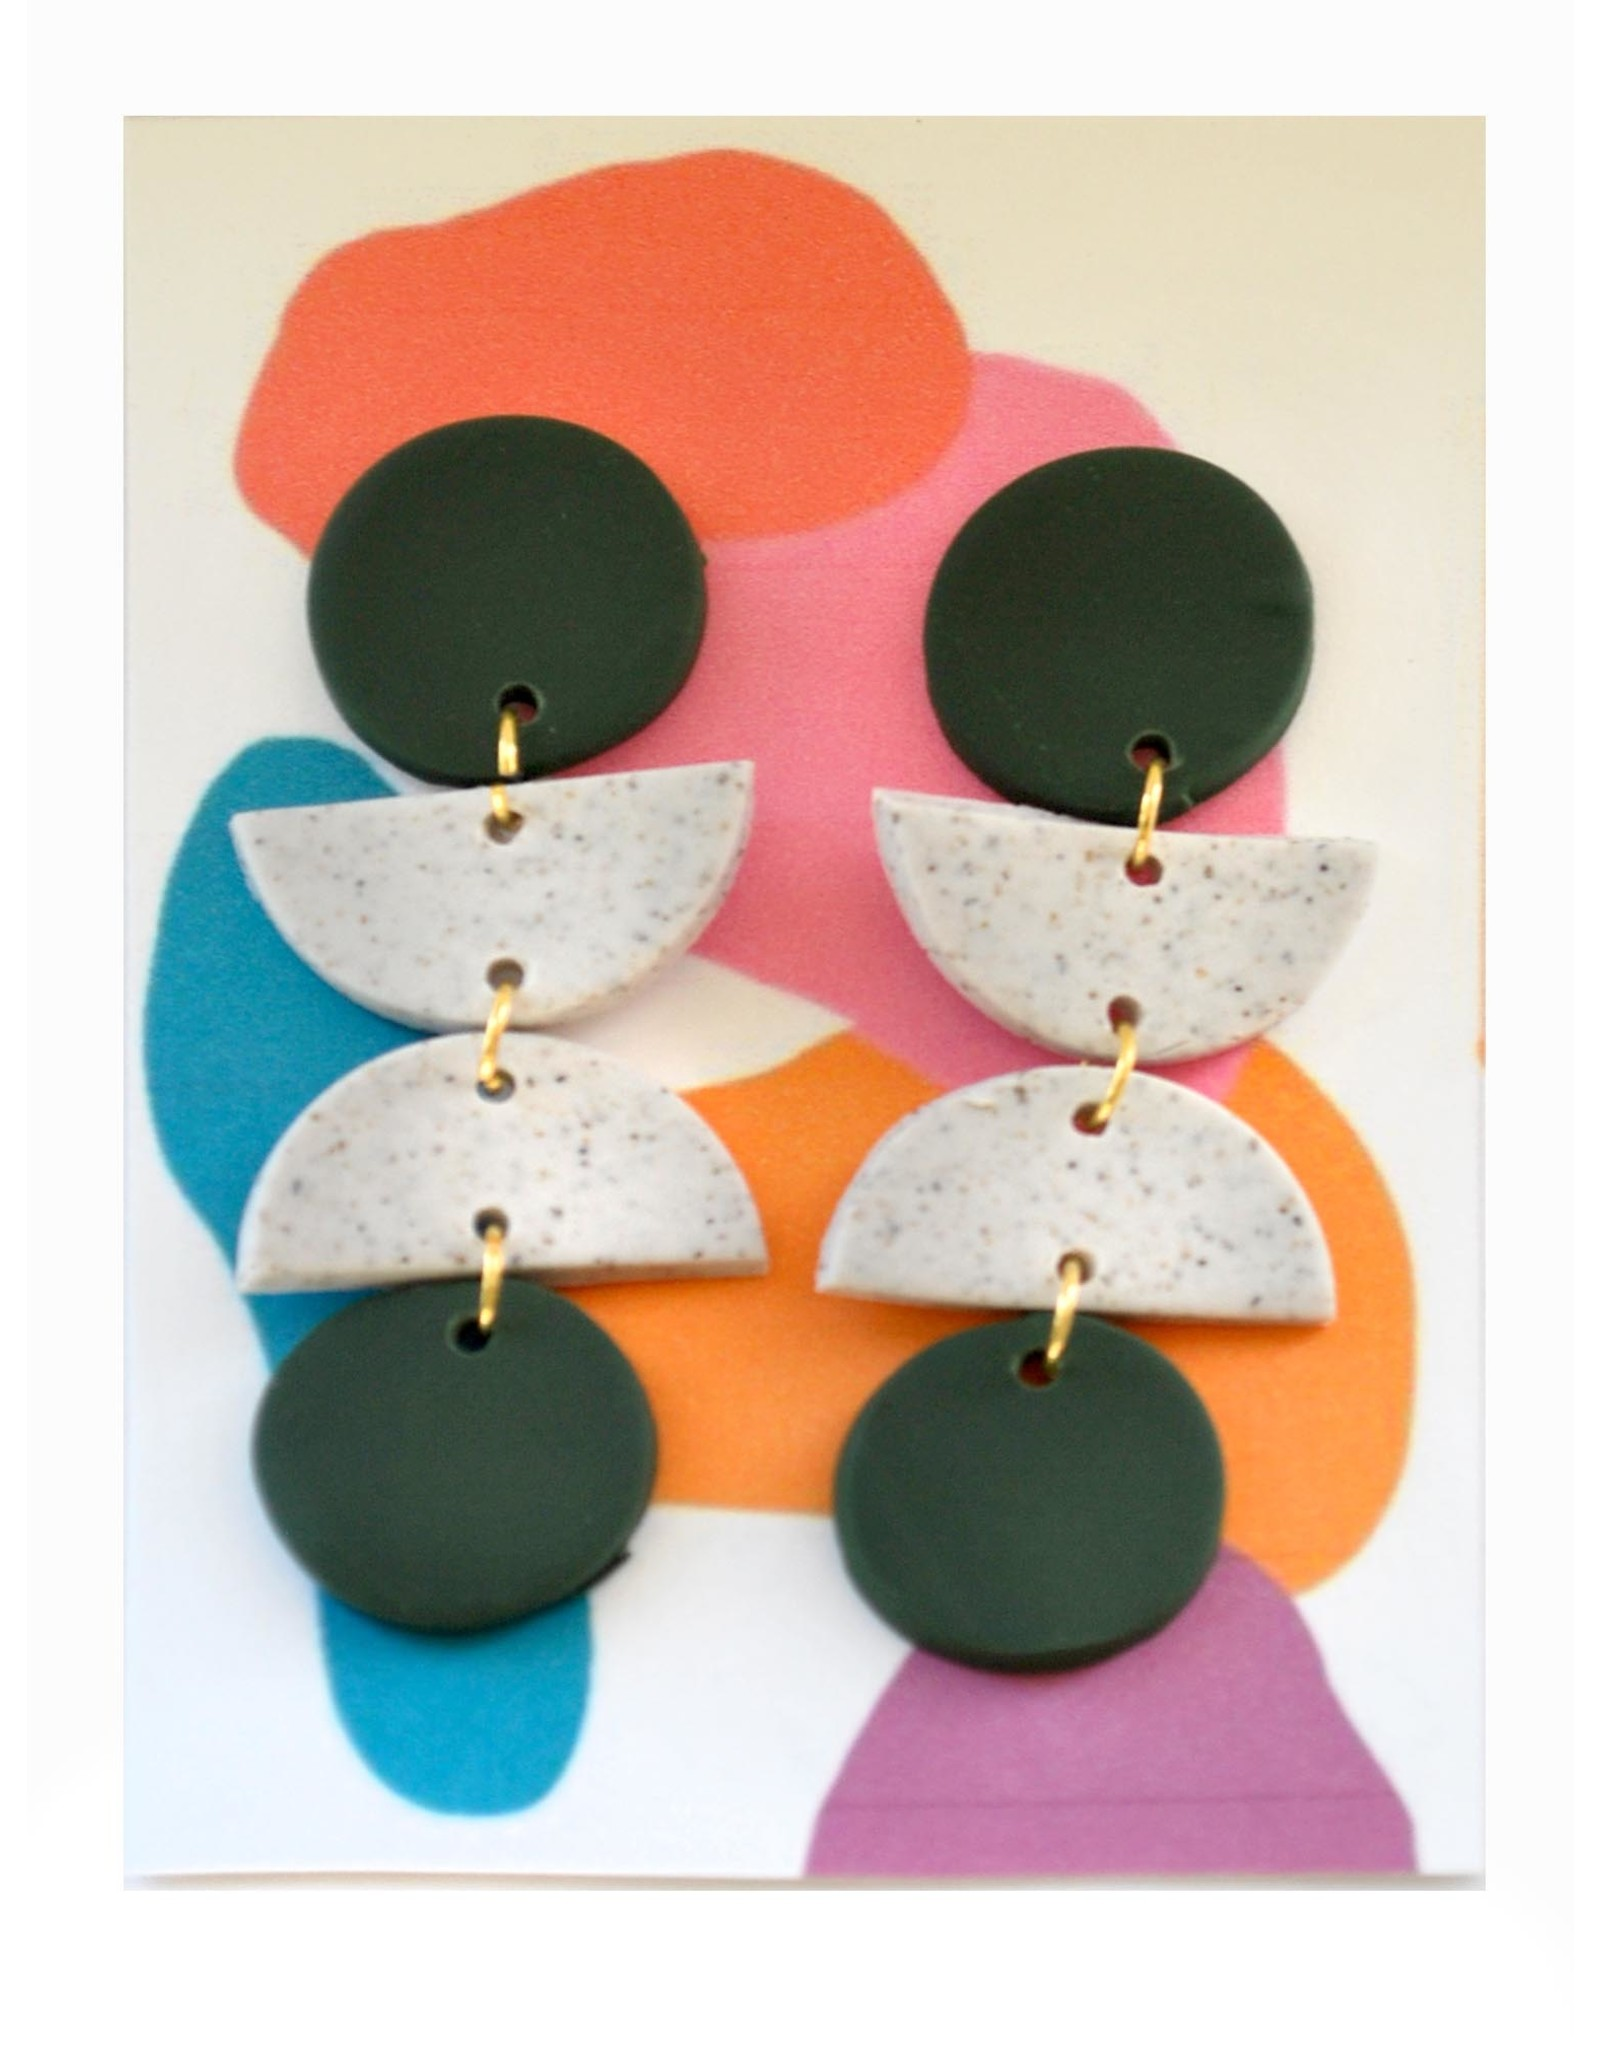 Speckled White and Black Clay Earrings by Clare Cinelli